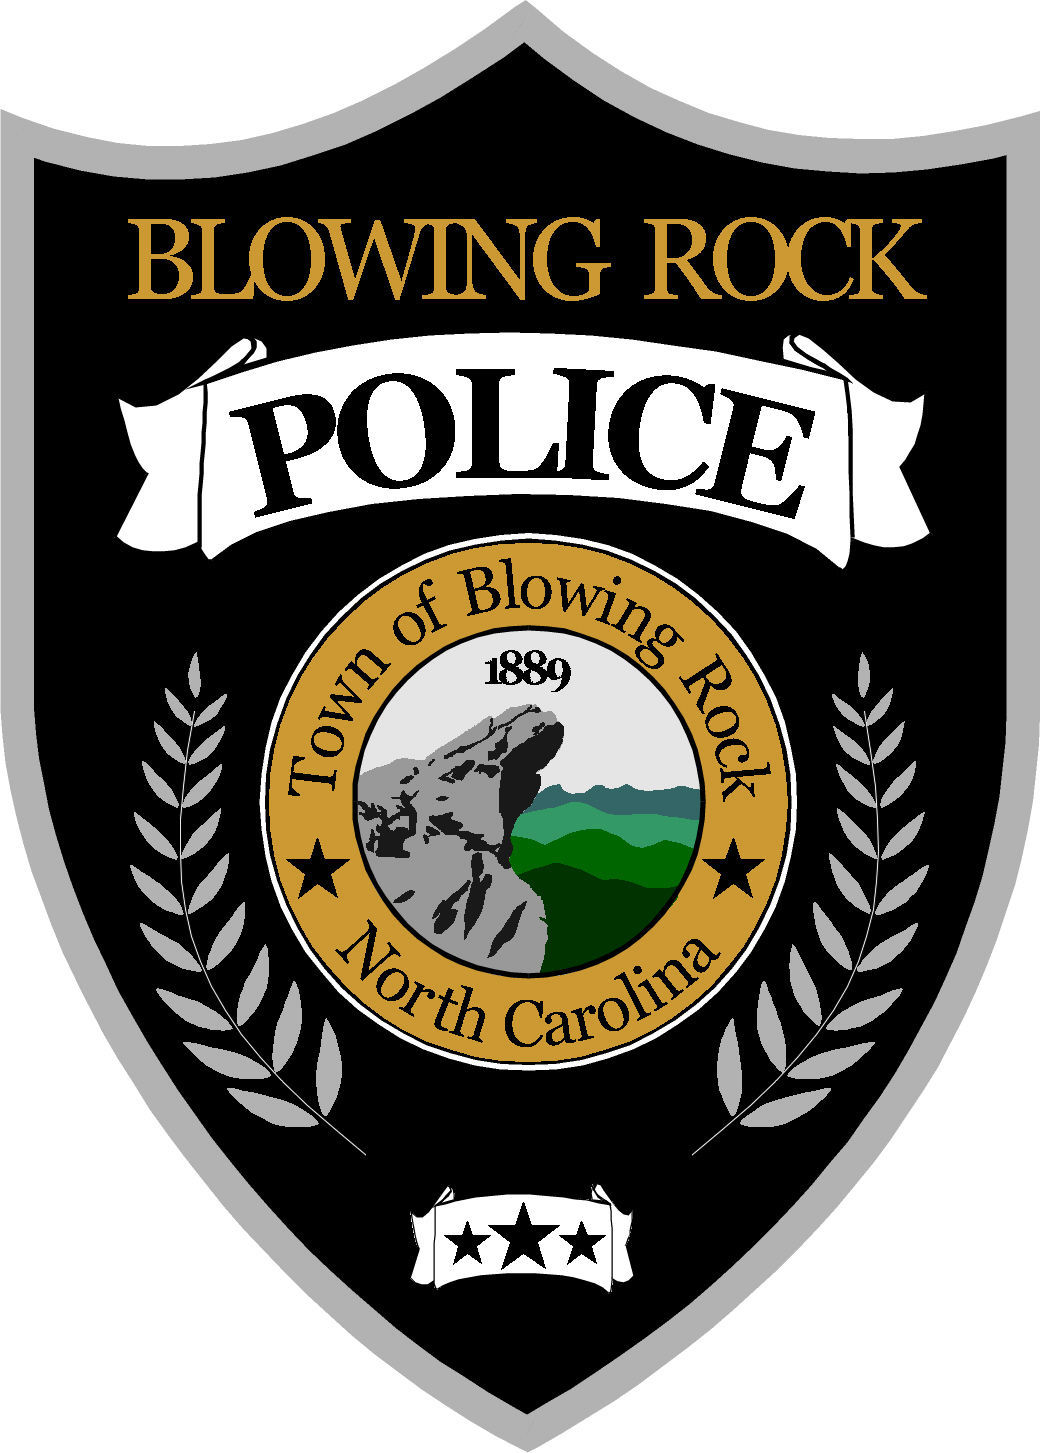 Blowing Rock Police logo